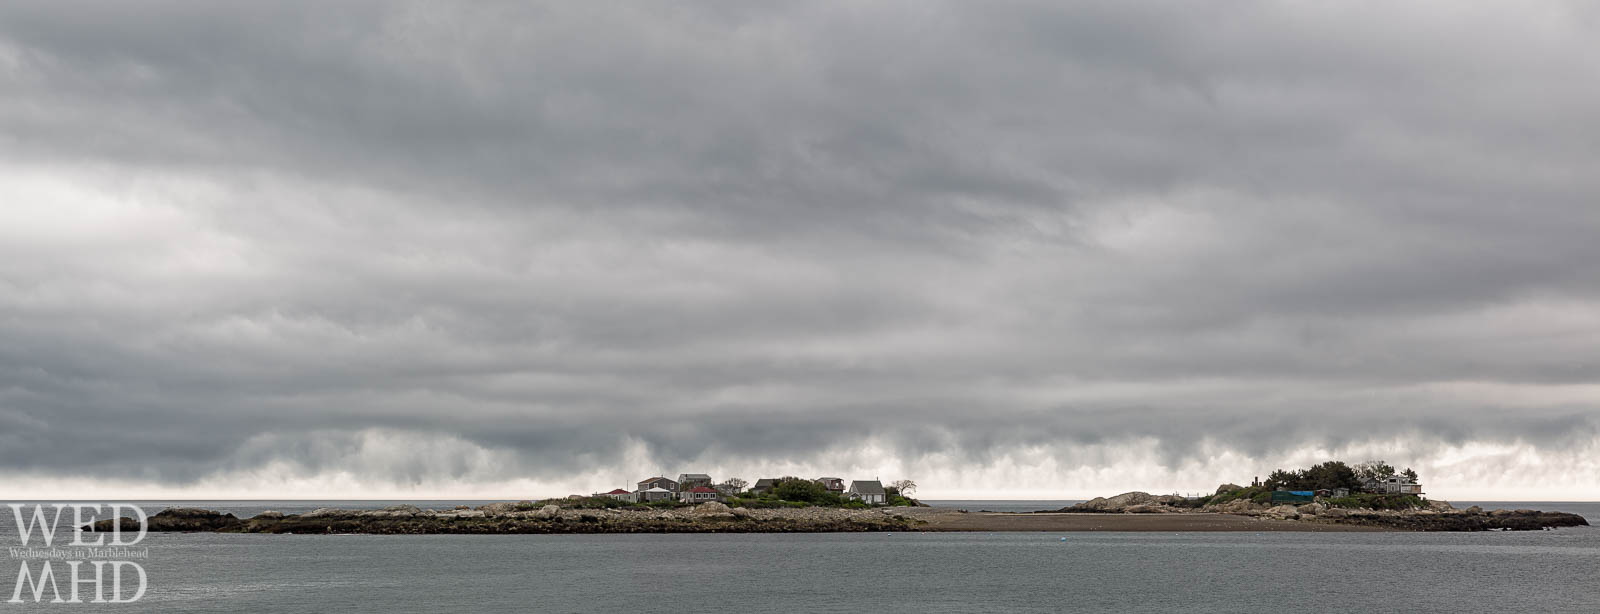 Tinkers Island Under Storm Clouds